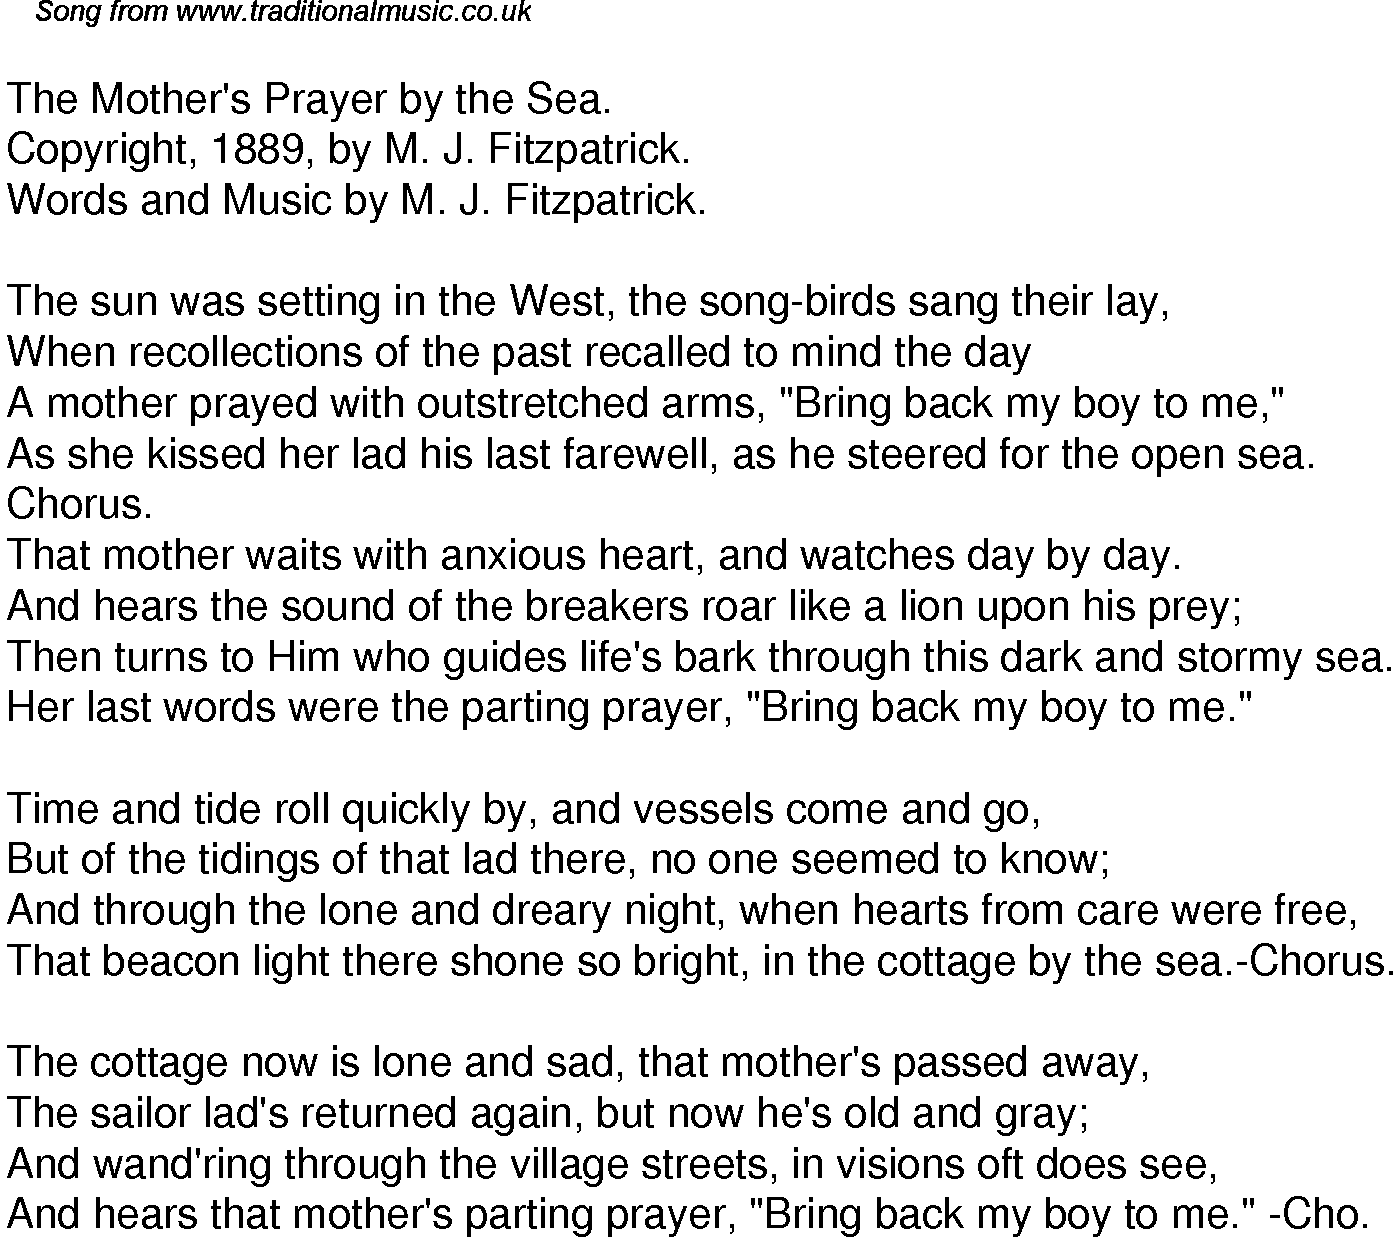 Old time song lyrics for 32 the mothers prayer by the sea download music lyrics as png graphic file publicscrutiny Images